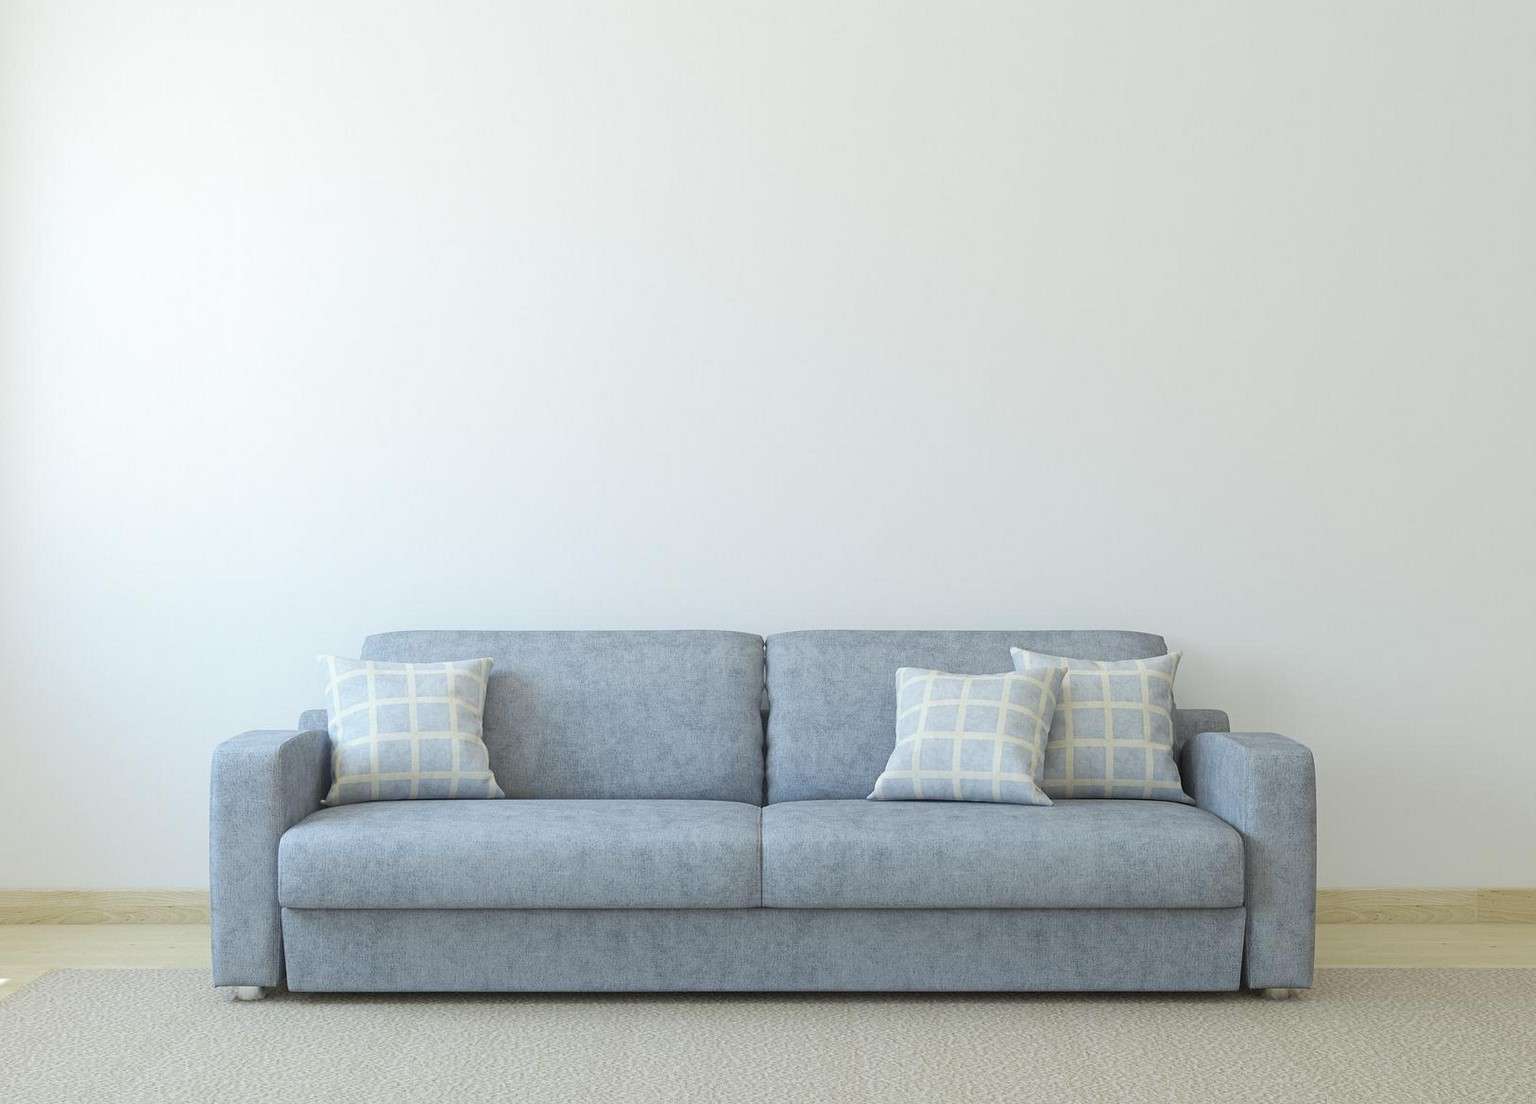 Unglaublich Coole Sofas Galerie Von Cool Couch. Sofa Cool _pl Cool Couch